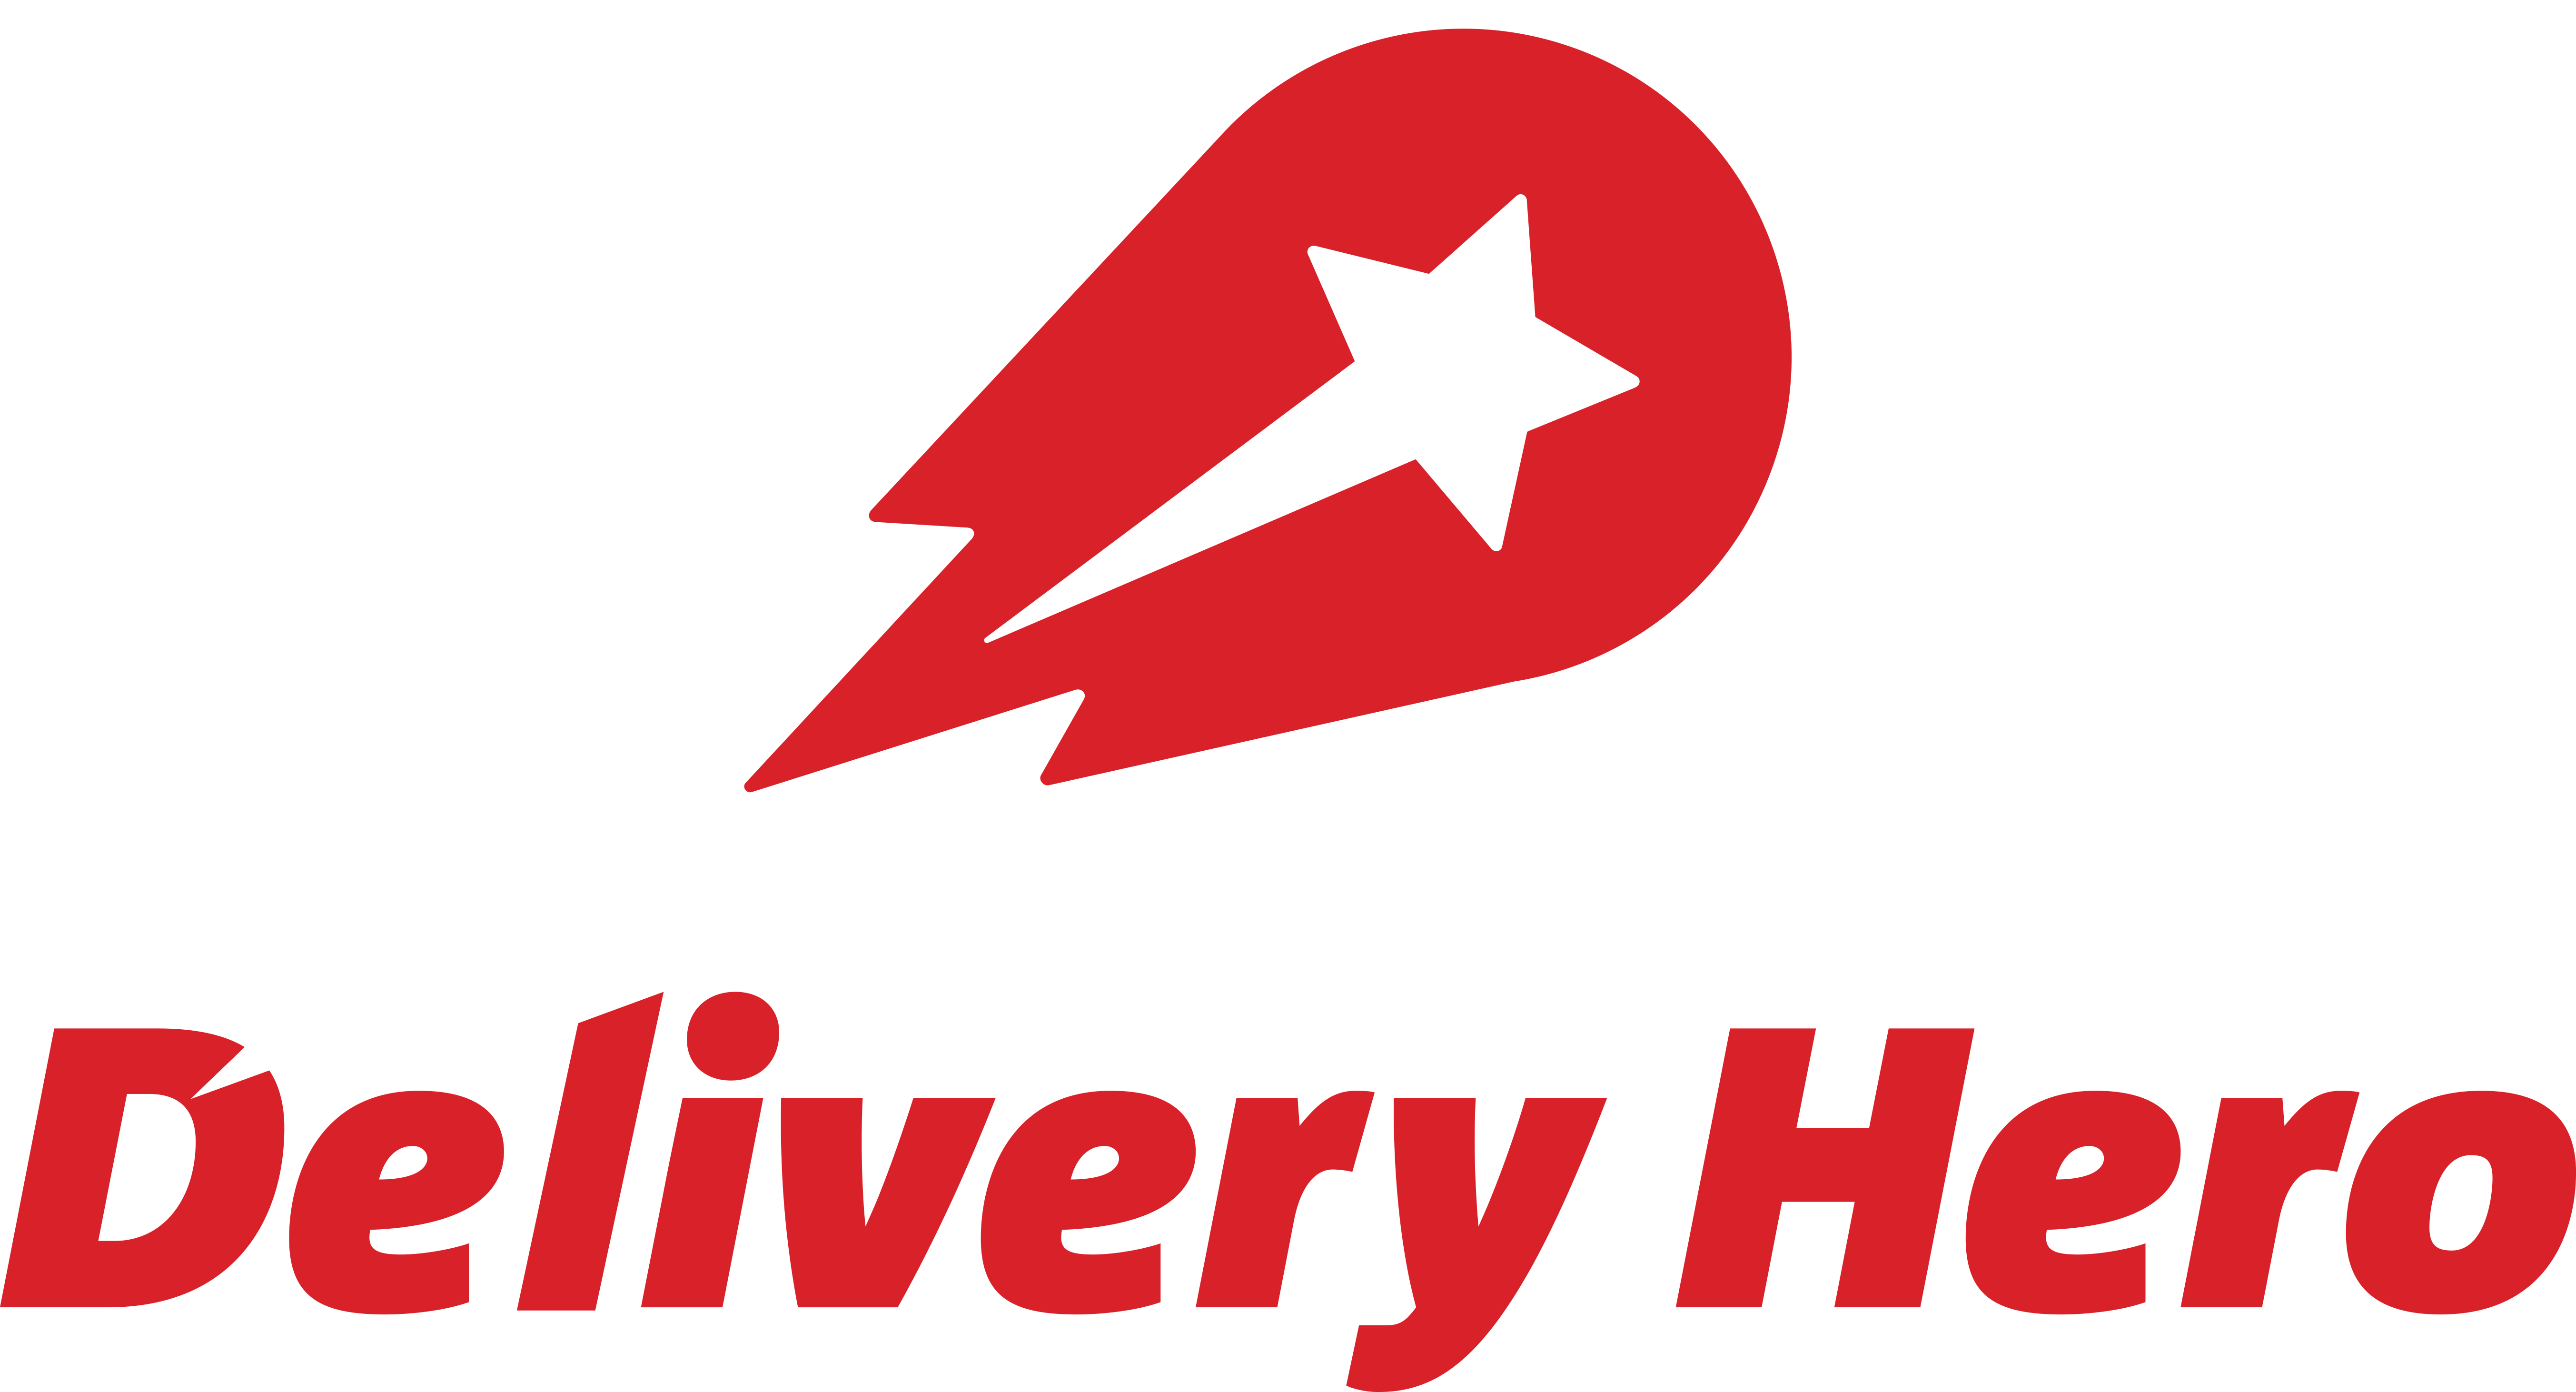 Delivery Hero – International Delivery Service for Food